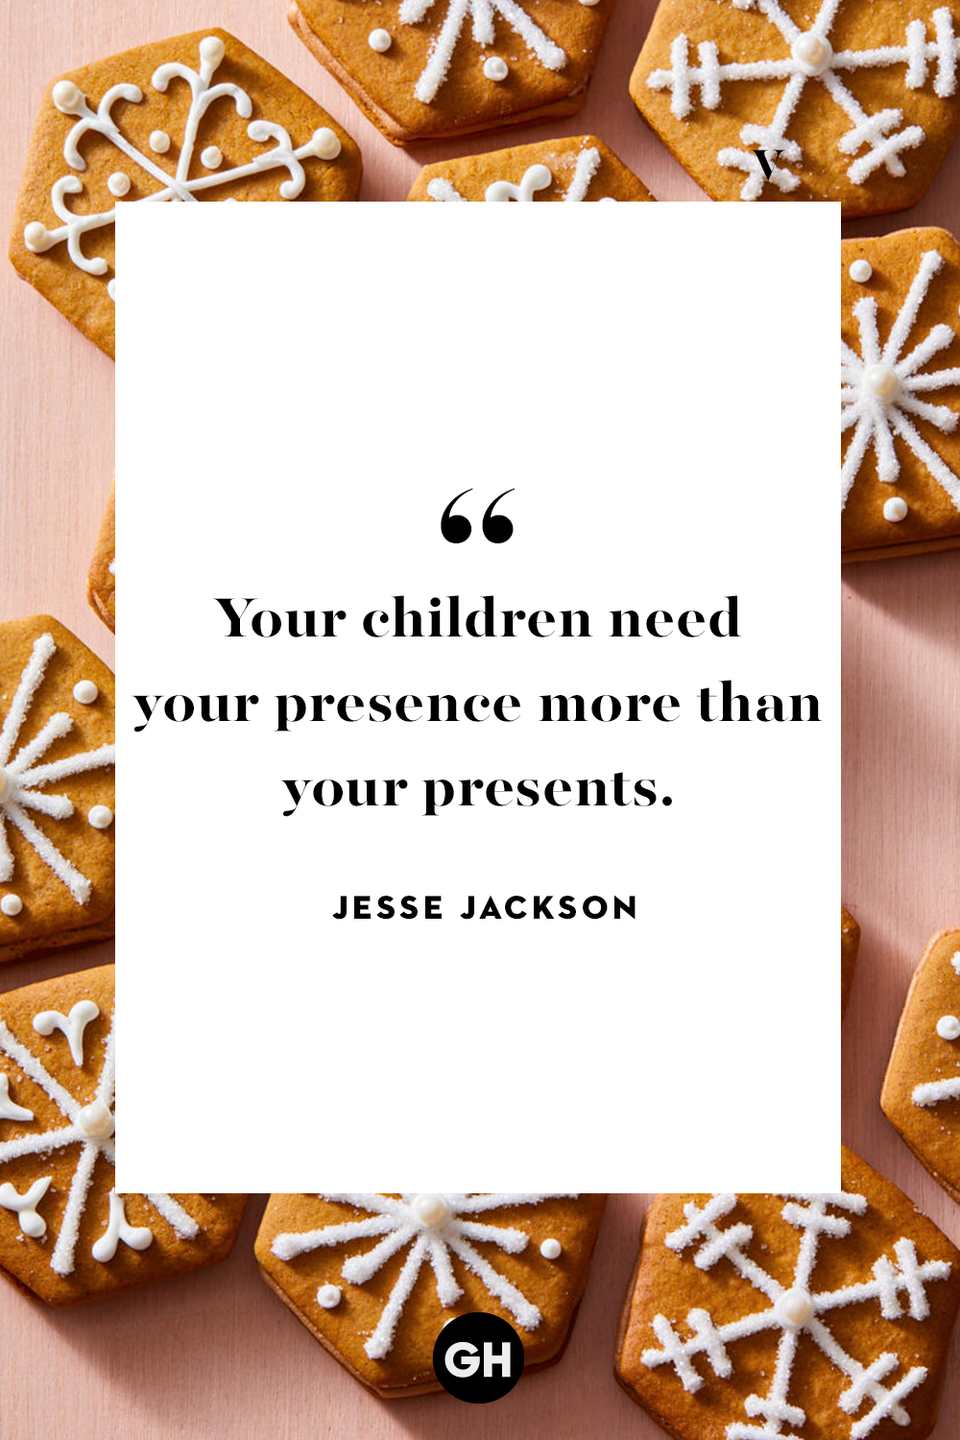 <p>Your children need your presence more than your presents.</p>